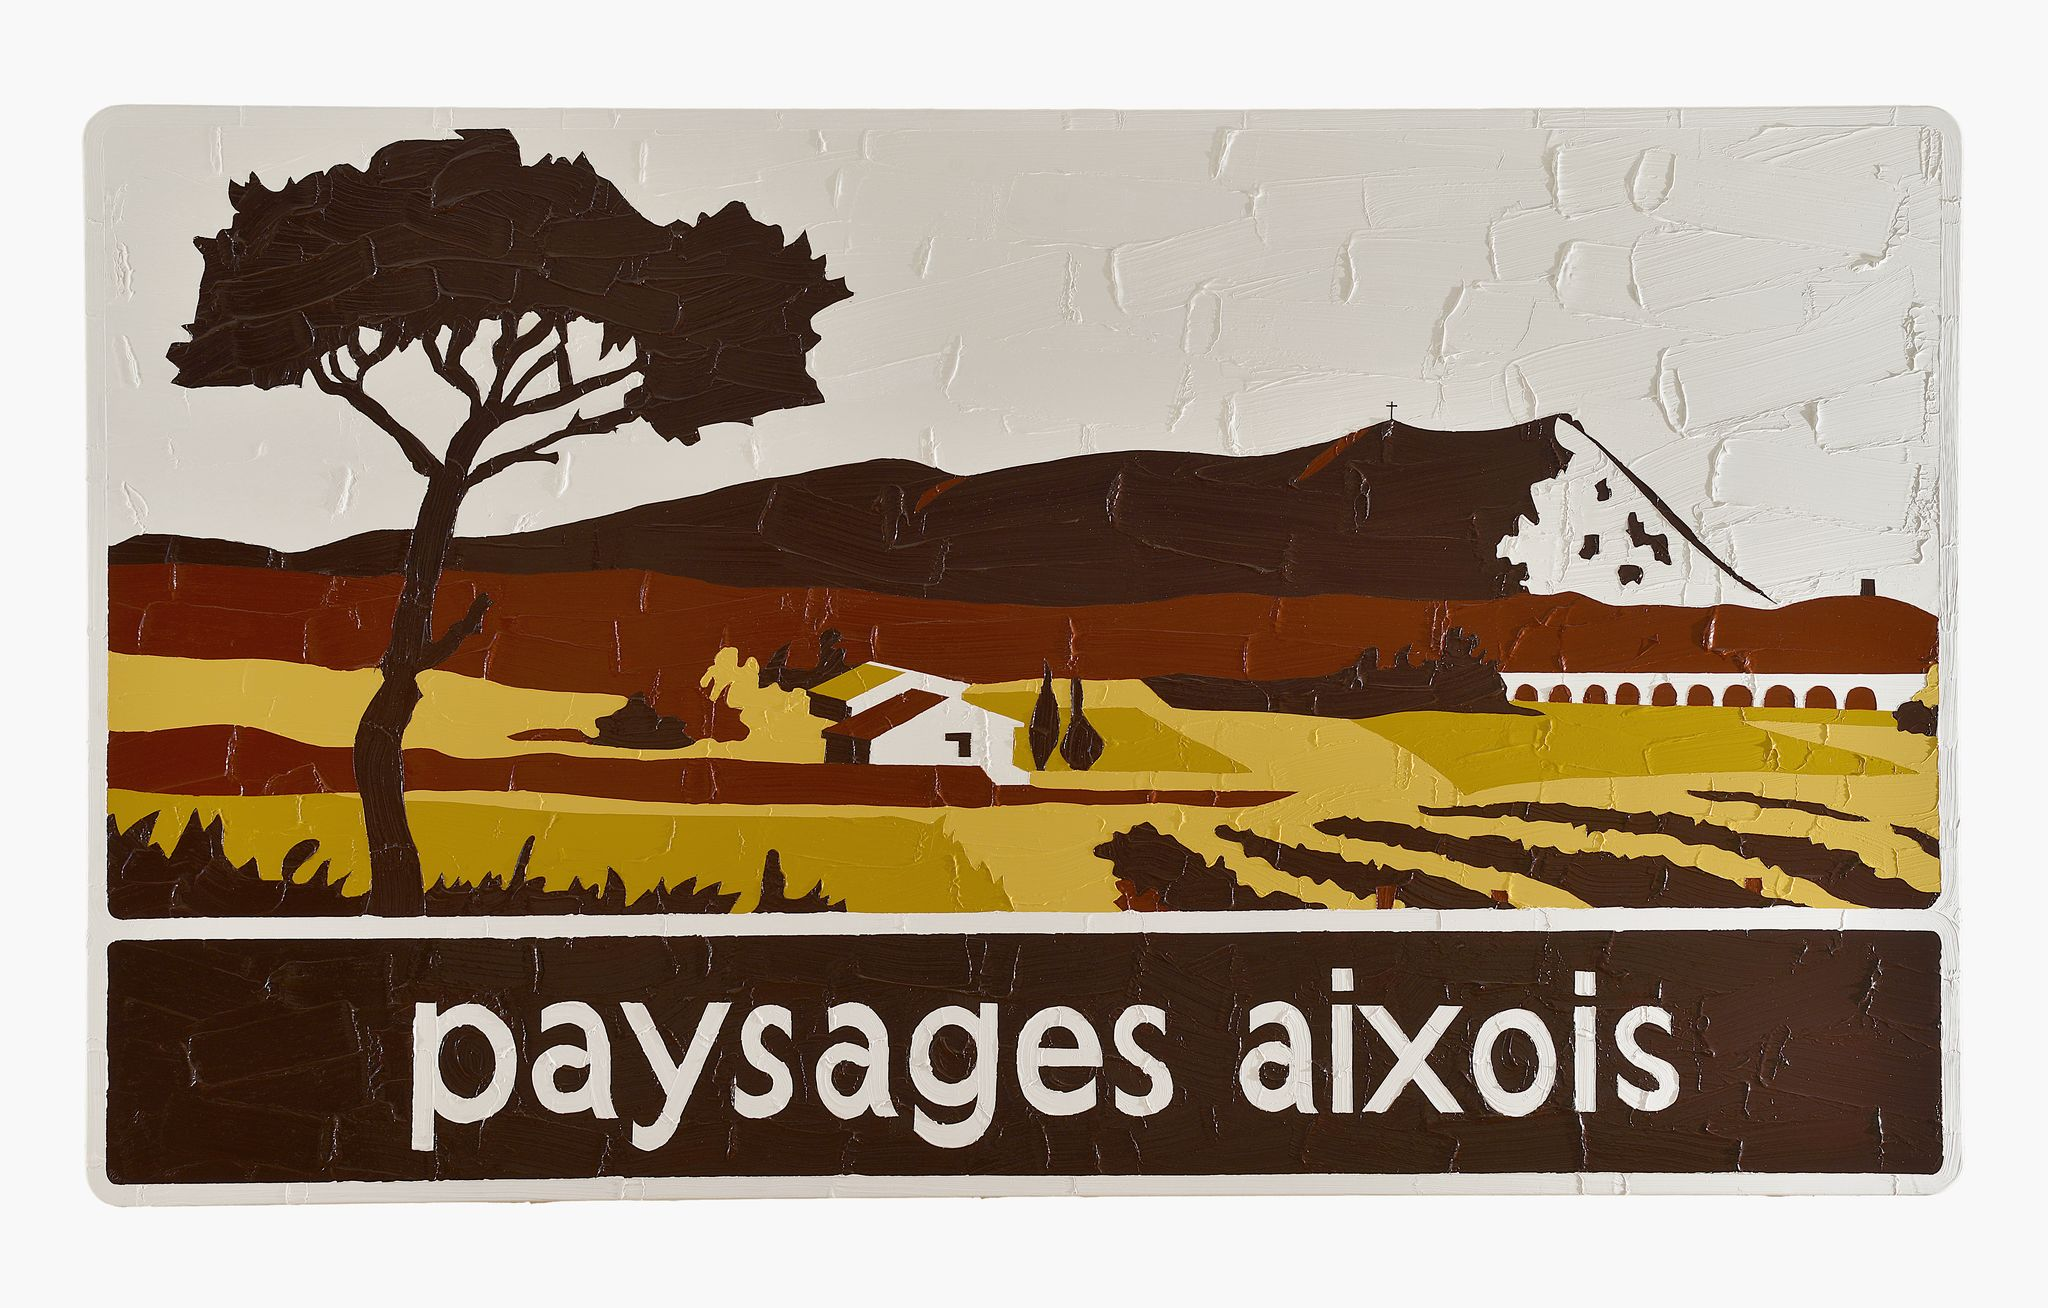 Bertrand Lavier. Paysages aixois, 2015. Acrylic on traffic sign. 140 x 240 cm - 55 1/8 x 94 1/2 inches © Bertrand Lavier. Courtesy of the Artist and Almine Rech Gallery. Photo: Hervé Hote